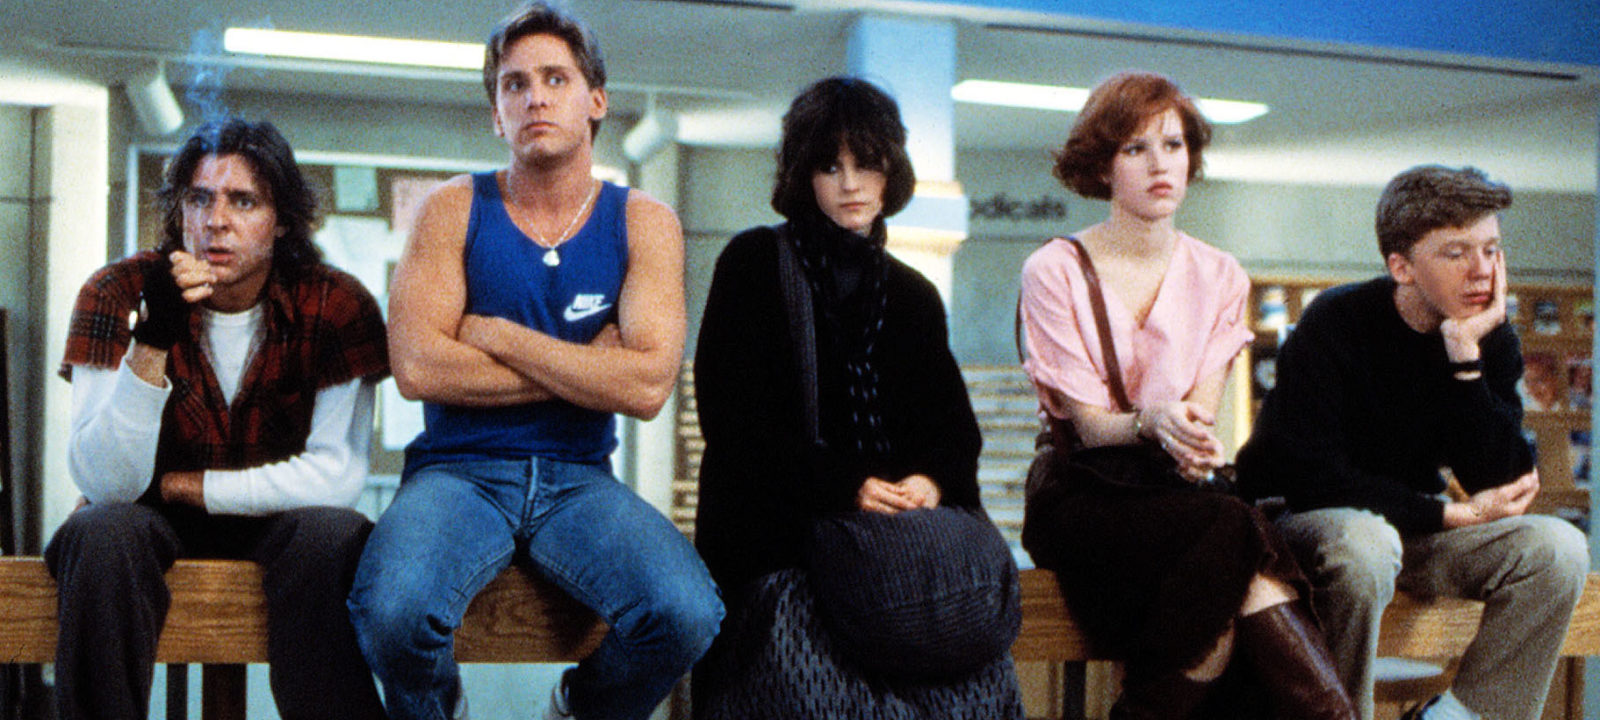 THE BREAKFAST CLUB, Judd Nelson, Emilio Estevez, Ally Sheedy, Molly Ringwald, Anthony Michael Hall, 1985.